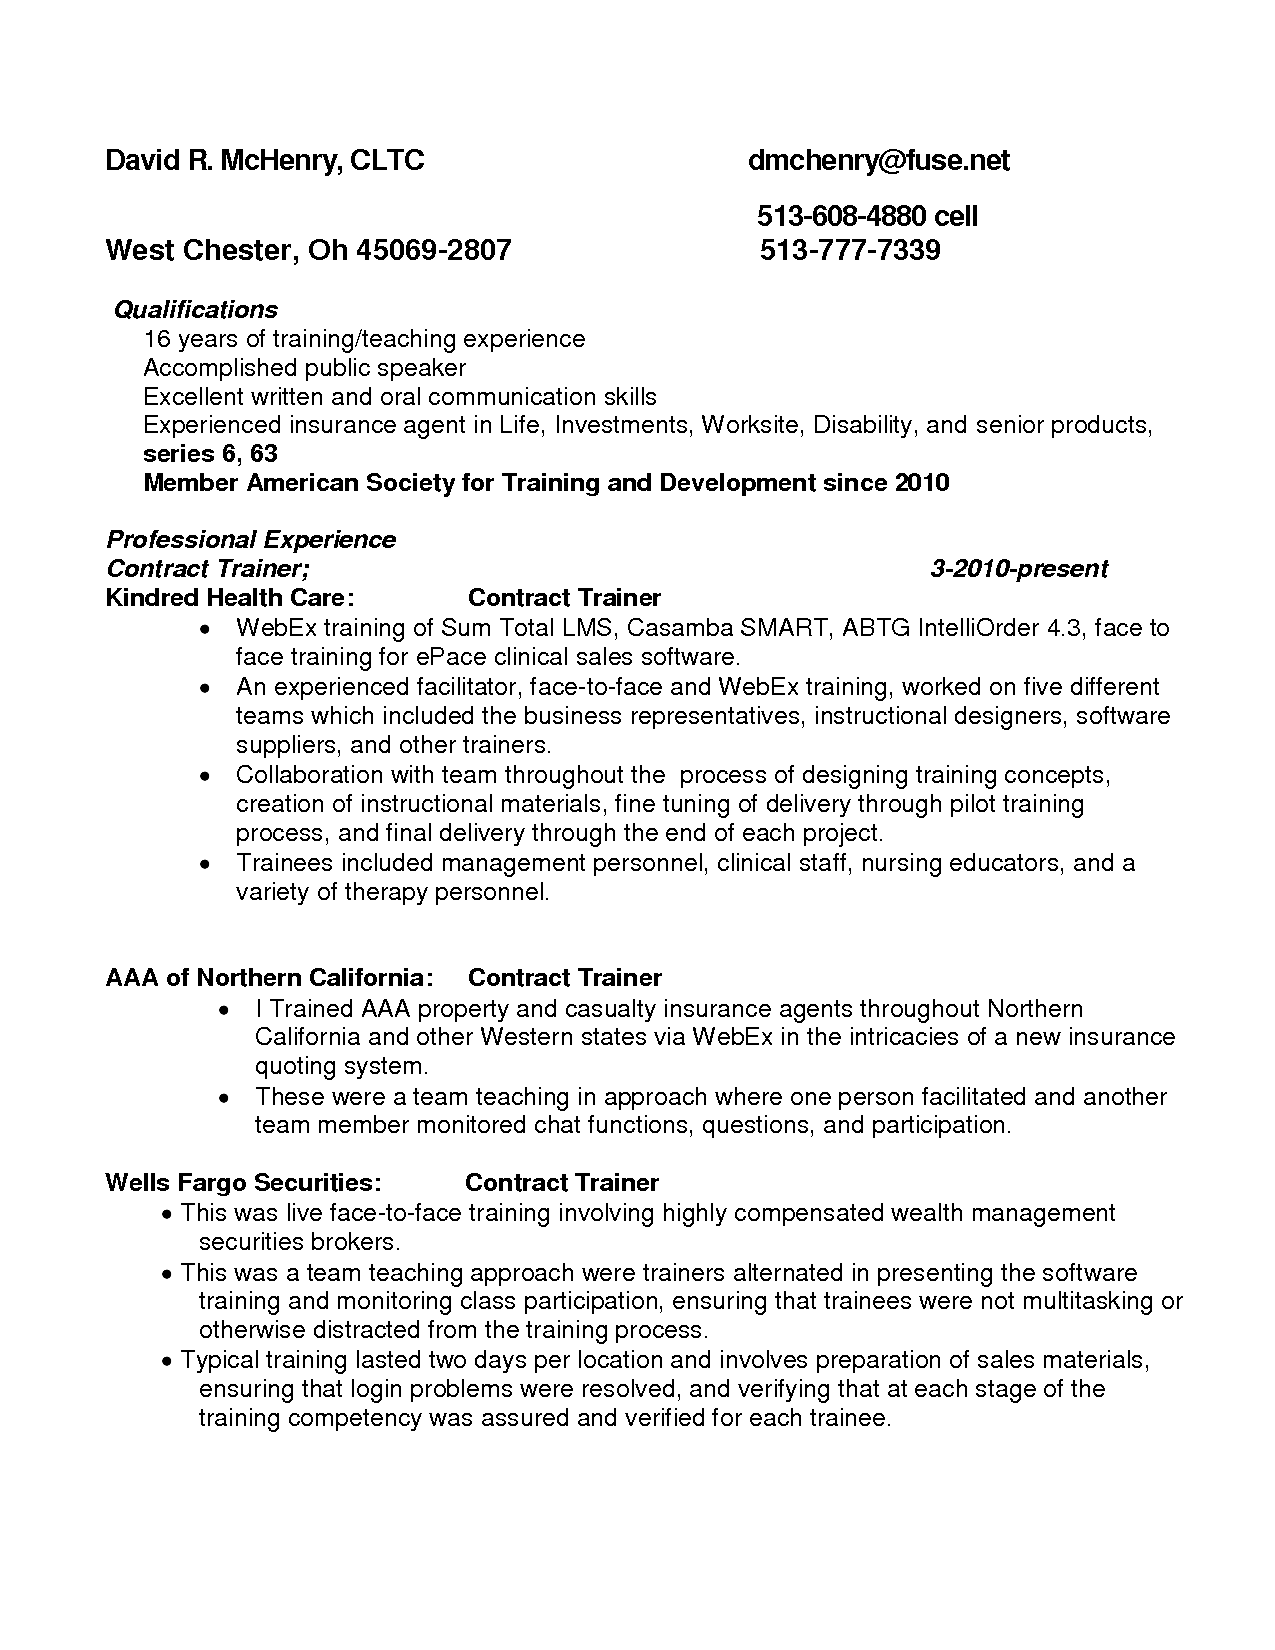 Resume Format Free. Resume Template Freetemplates Freeresume ...